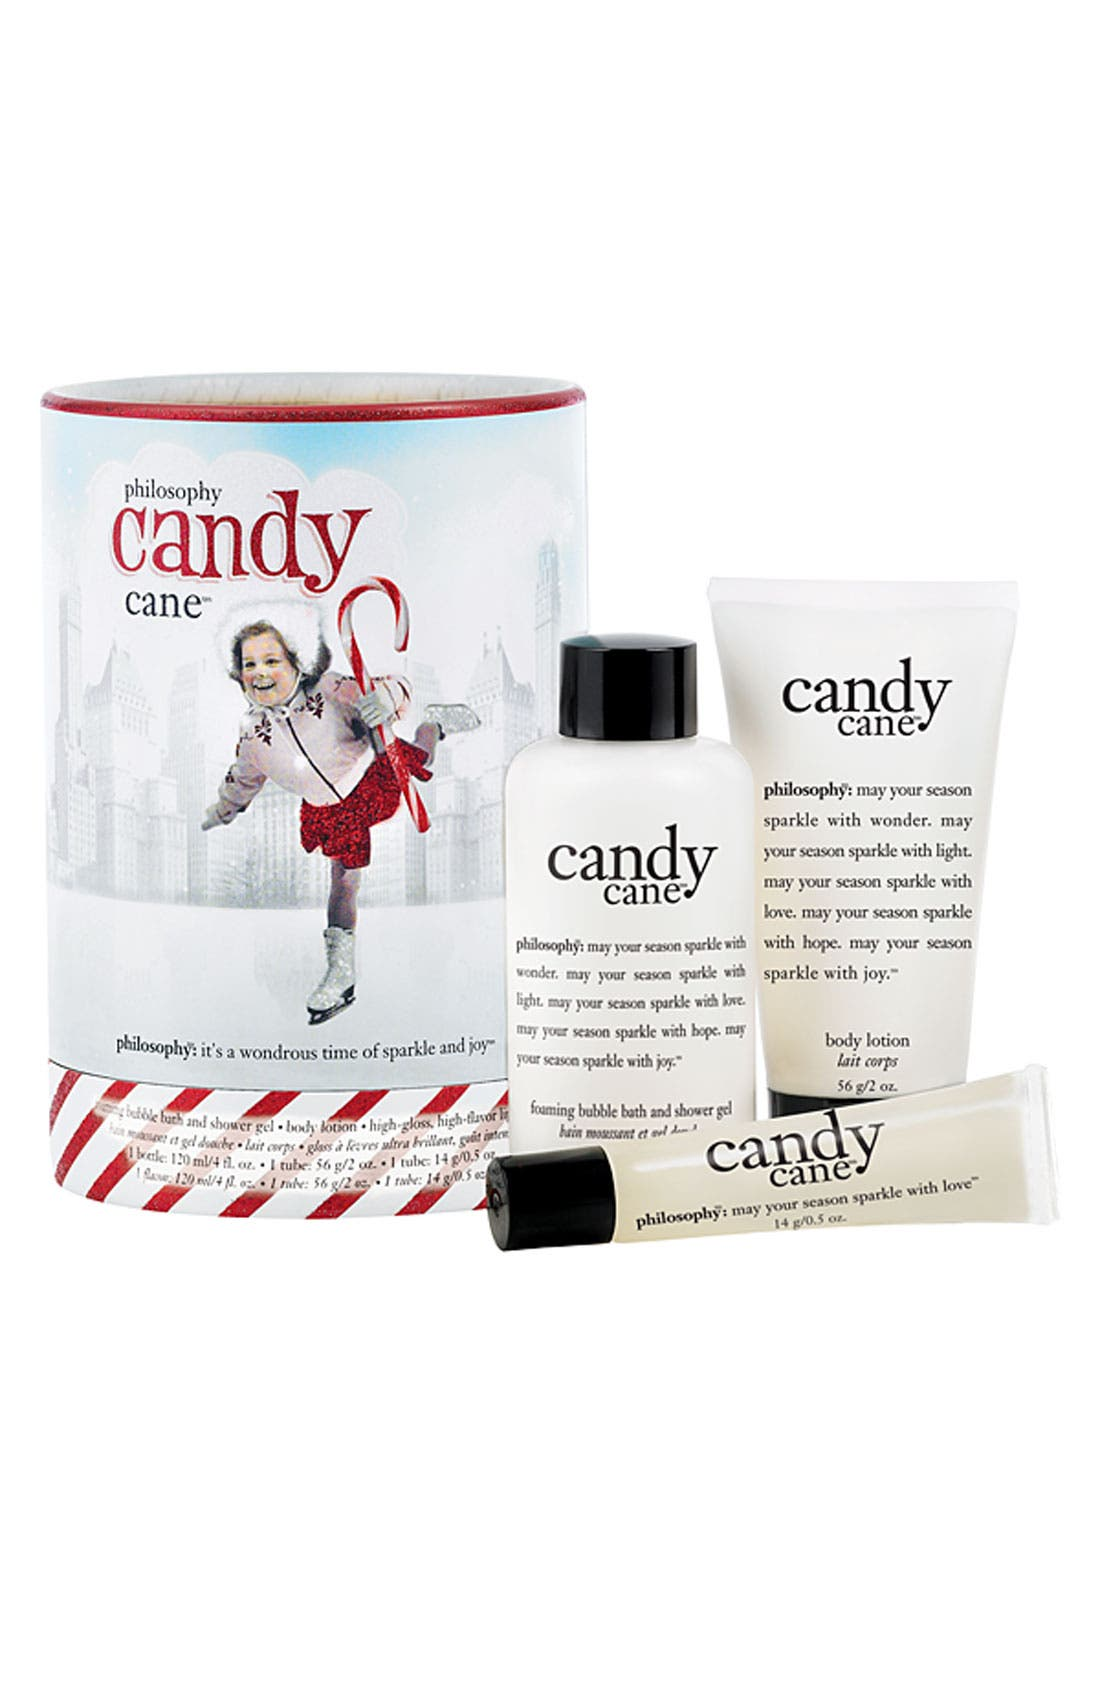 Alternate Image 1 Selected - philosophy 'candy cane' gift set